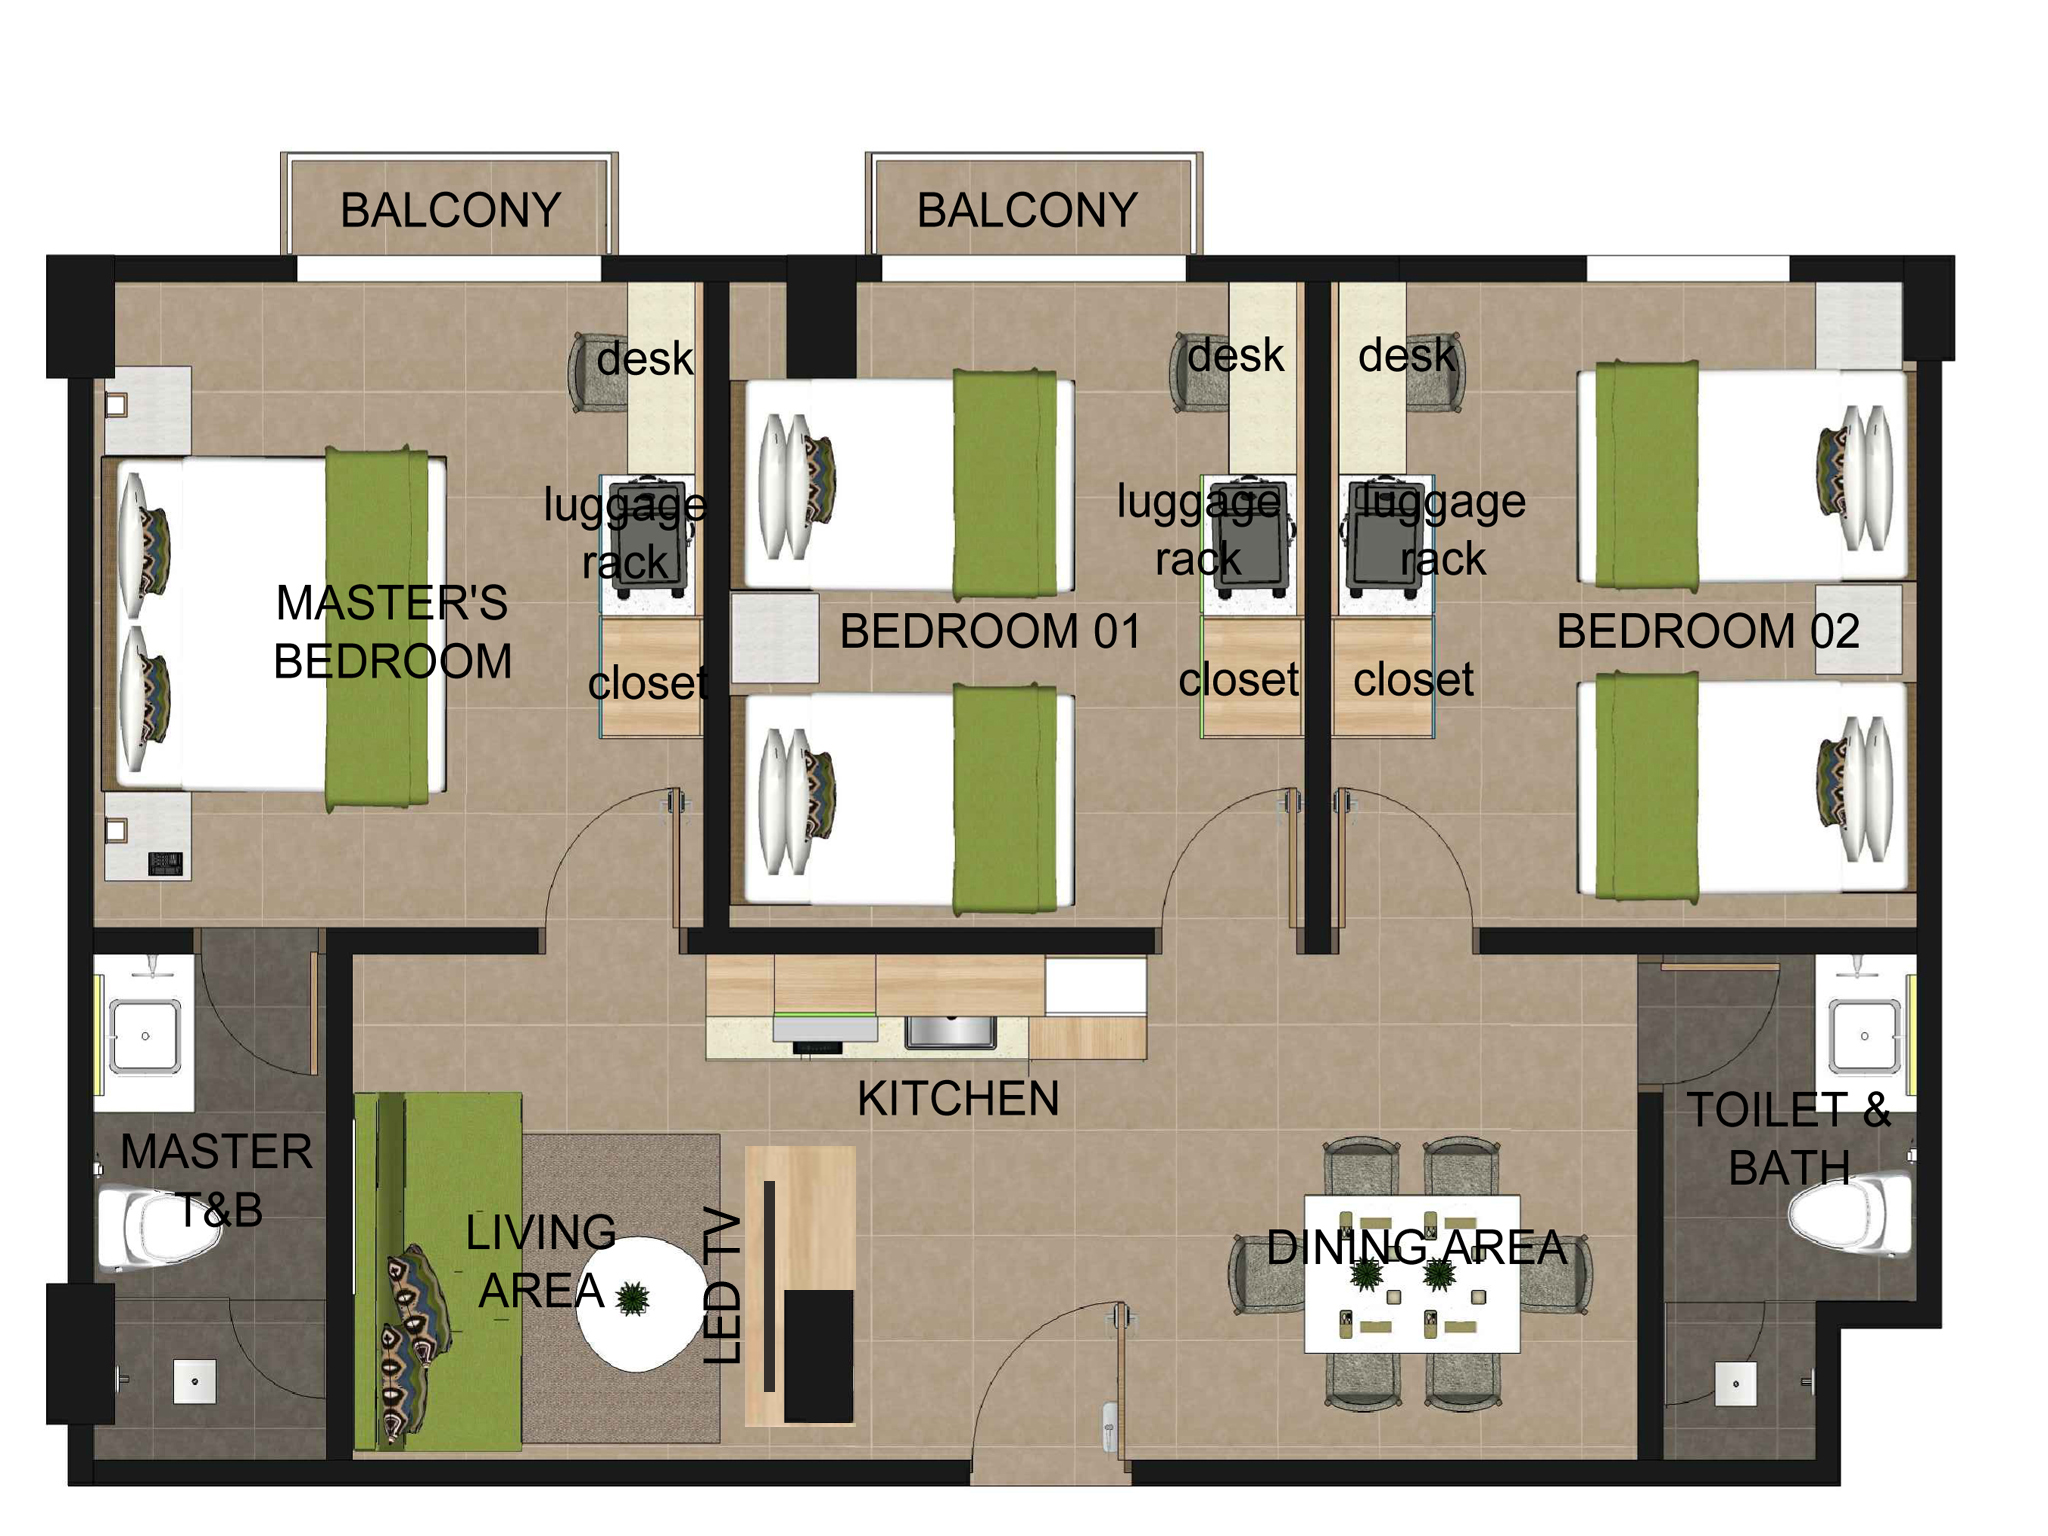 3 bedroom floor plans 3 bedroom floor plans monmouth county ocean county new jersey decorating - Bed room plan ...